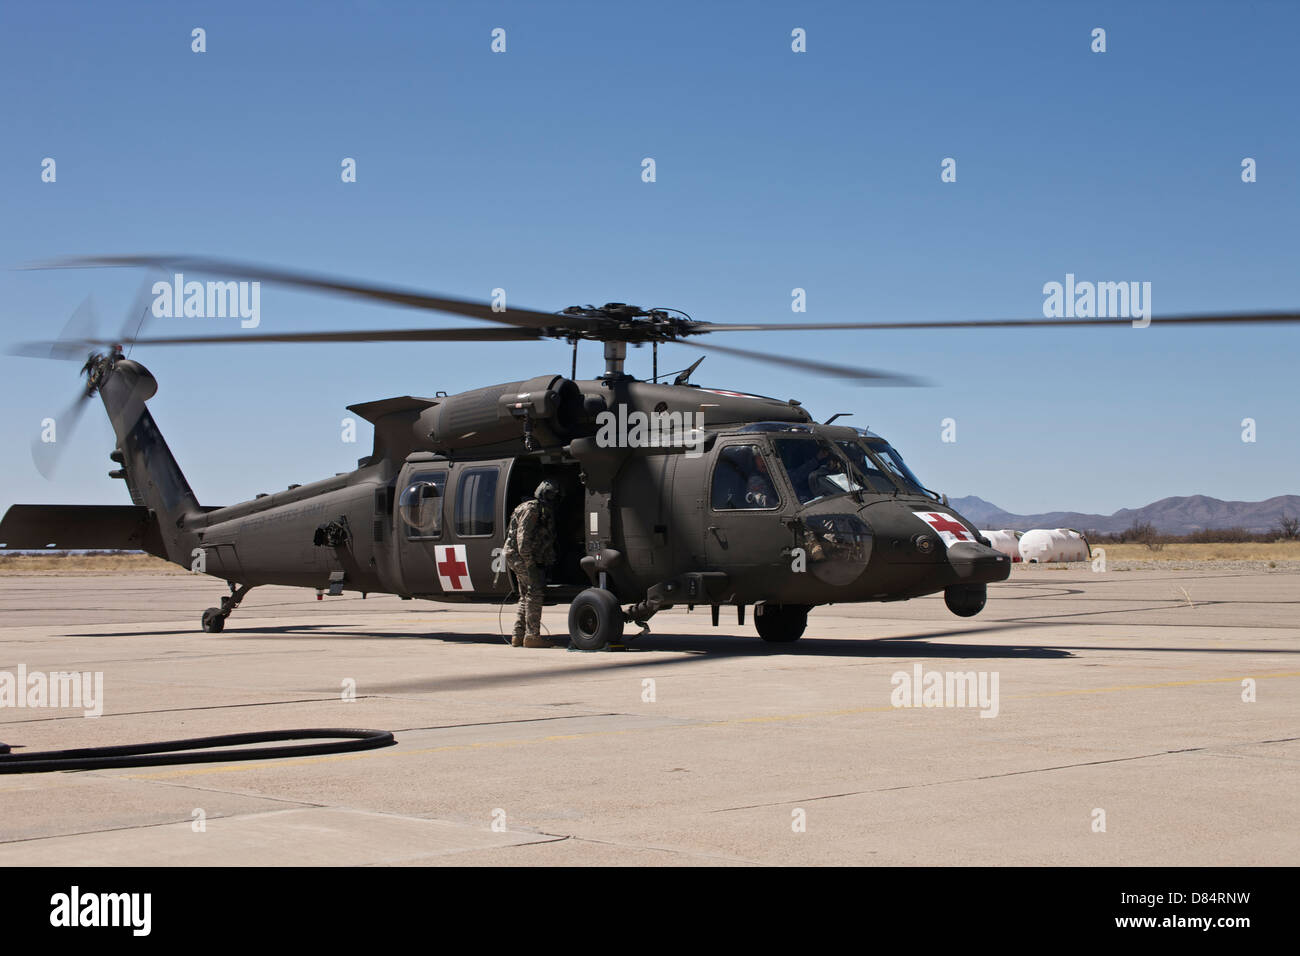 A UH-60 Blackhawk finishes refueling and prepares to taxi away to continue its mission, Davis Monthan Air Force - Stock Image